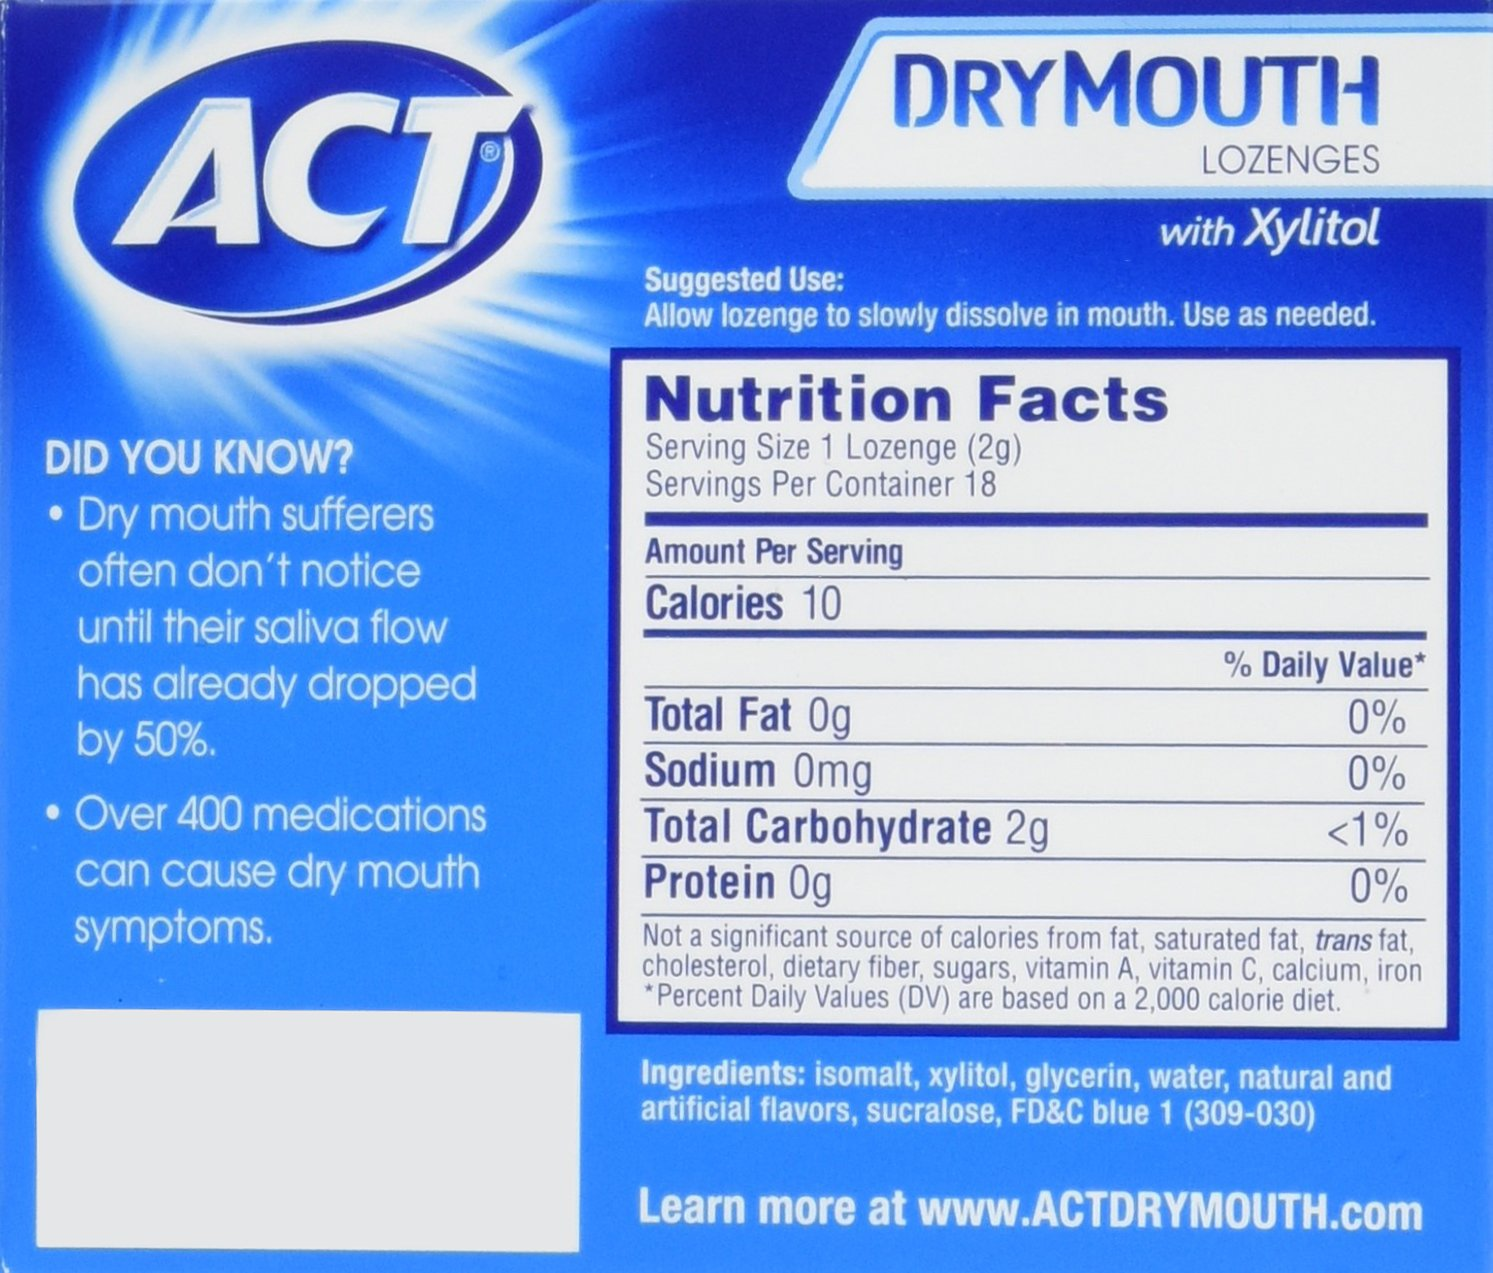 ACT Total Care, Dry Mouth Lozenges, 18 Count (Pack of 6), Soothing Mint Flavored Lozenges with Xylitol Help Moisturize Mouth Tissue to Sooth and Relieve Discomfort from Dry Mouth, Freshens Breath by ACT (Image #2)